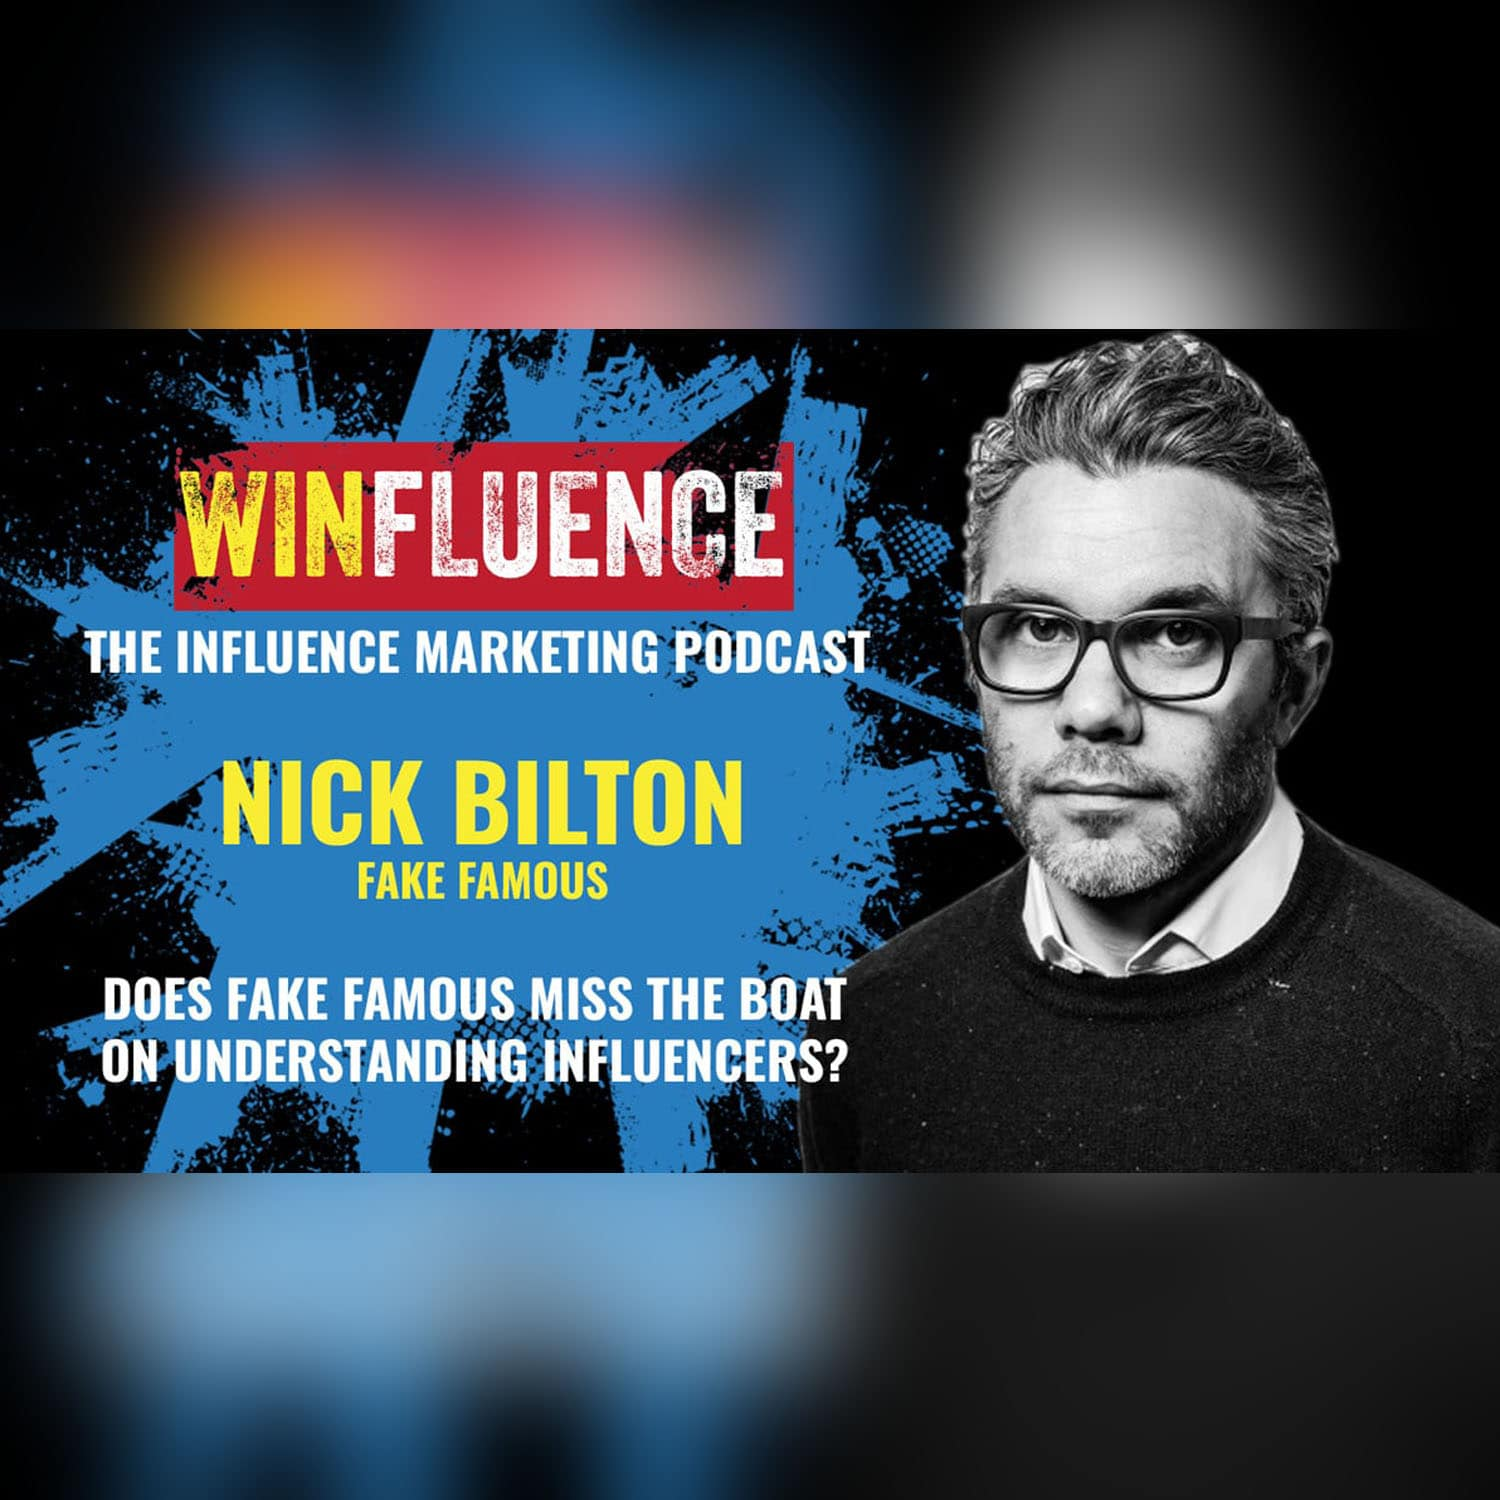 Fake Famous documentary of Nick Bilton by RUNWAY MAGAZINE